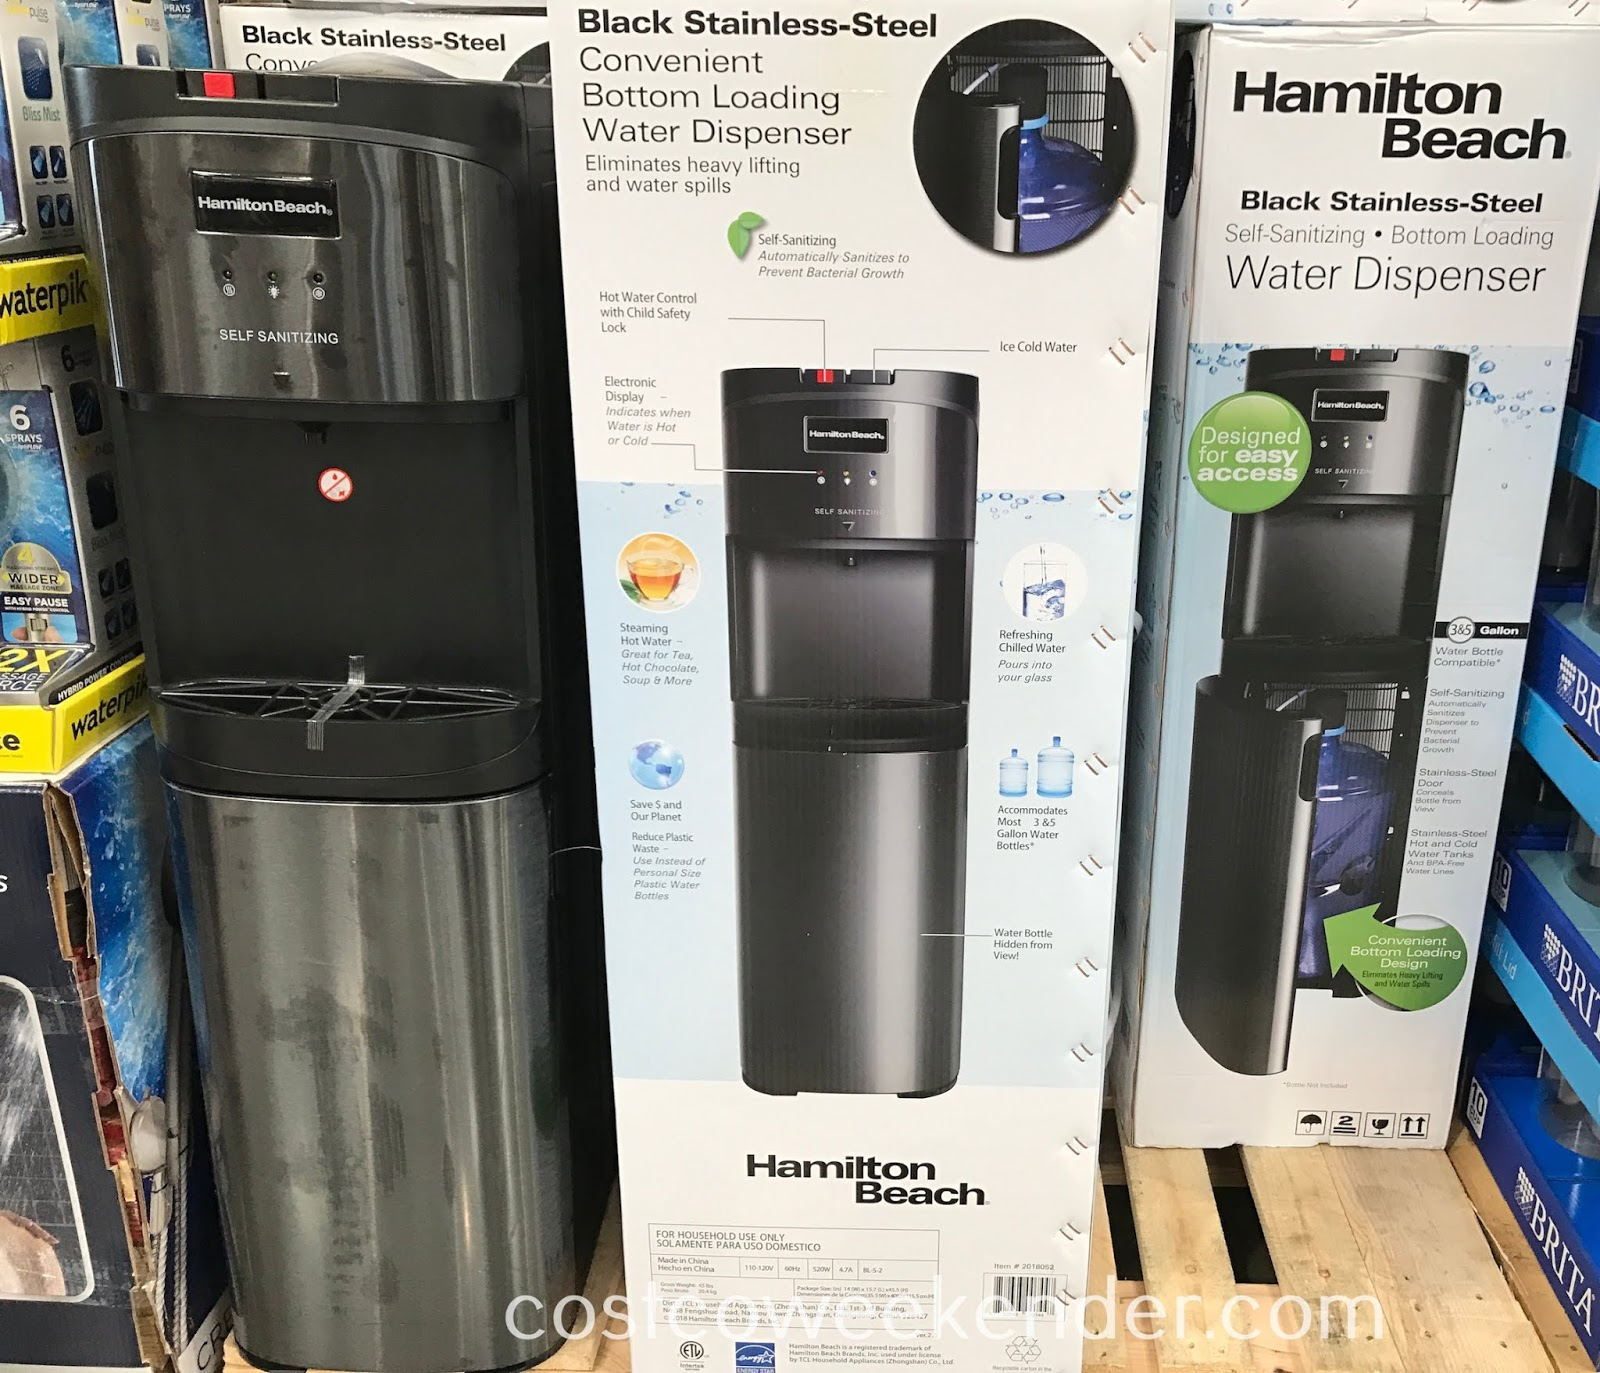 Provide water for your household while saving money with the Hamilton Beach Bottom Loading Water Cooler